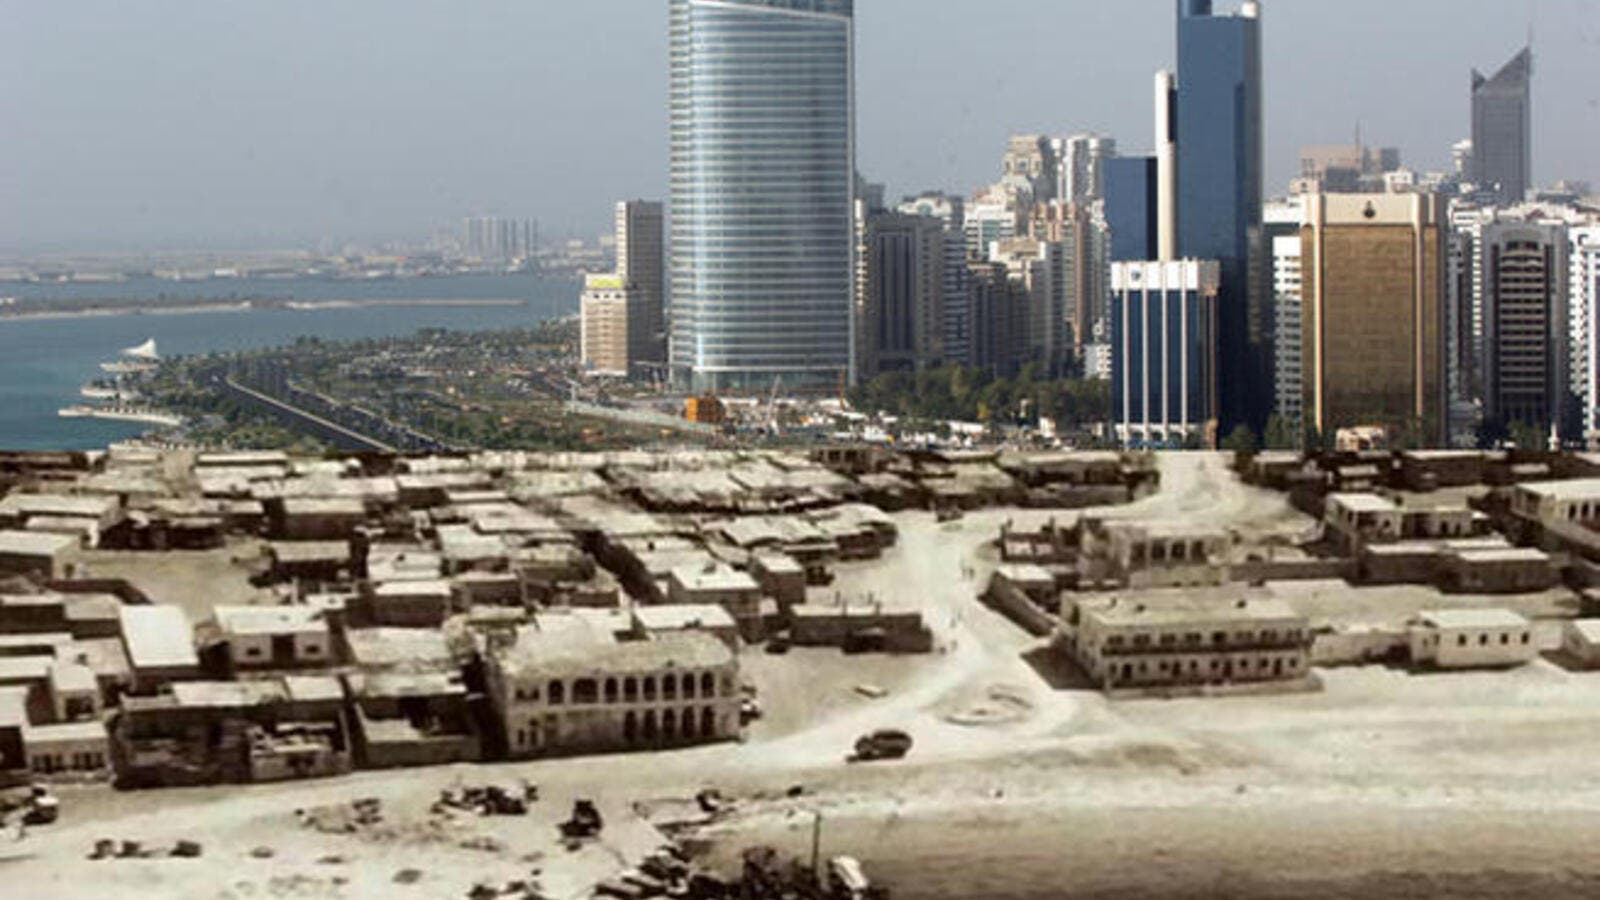 The GCC is building one heck of a construction market with its $1 3